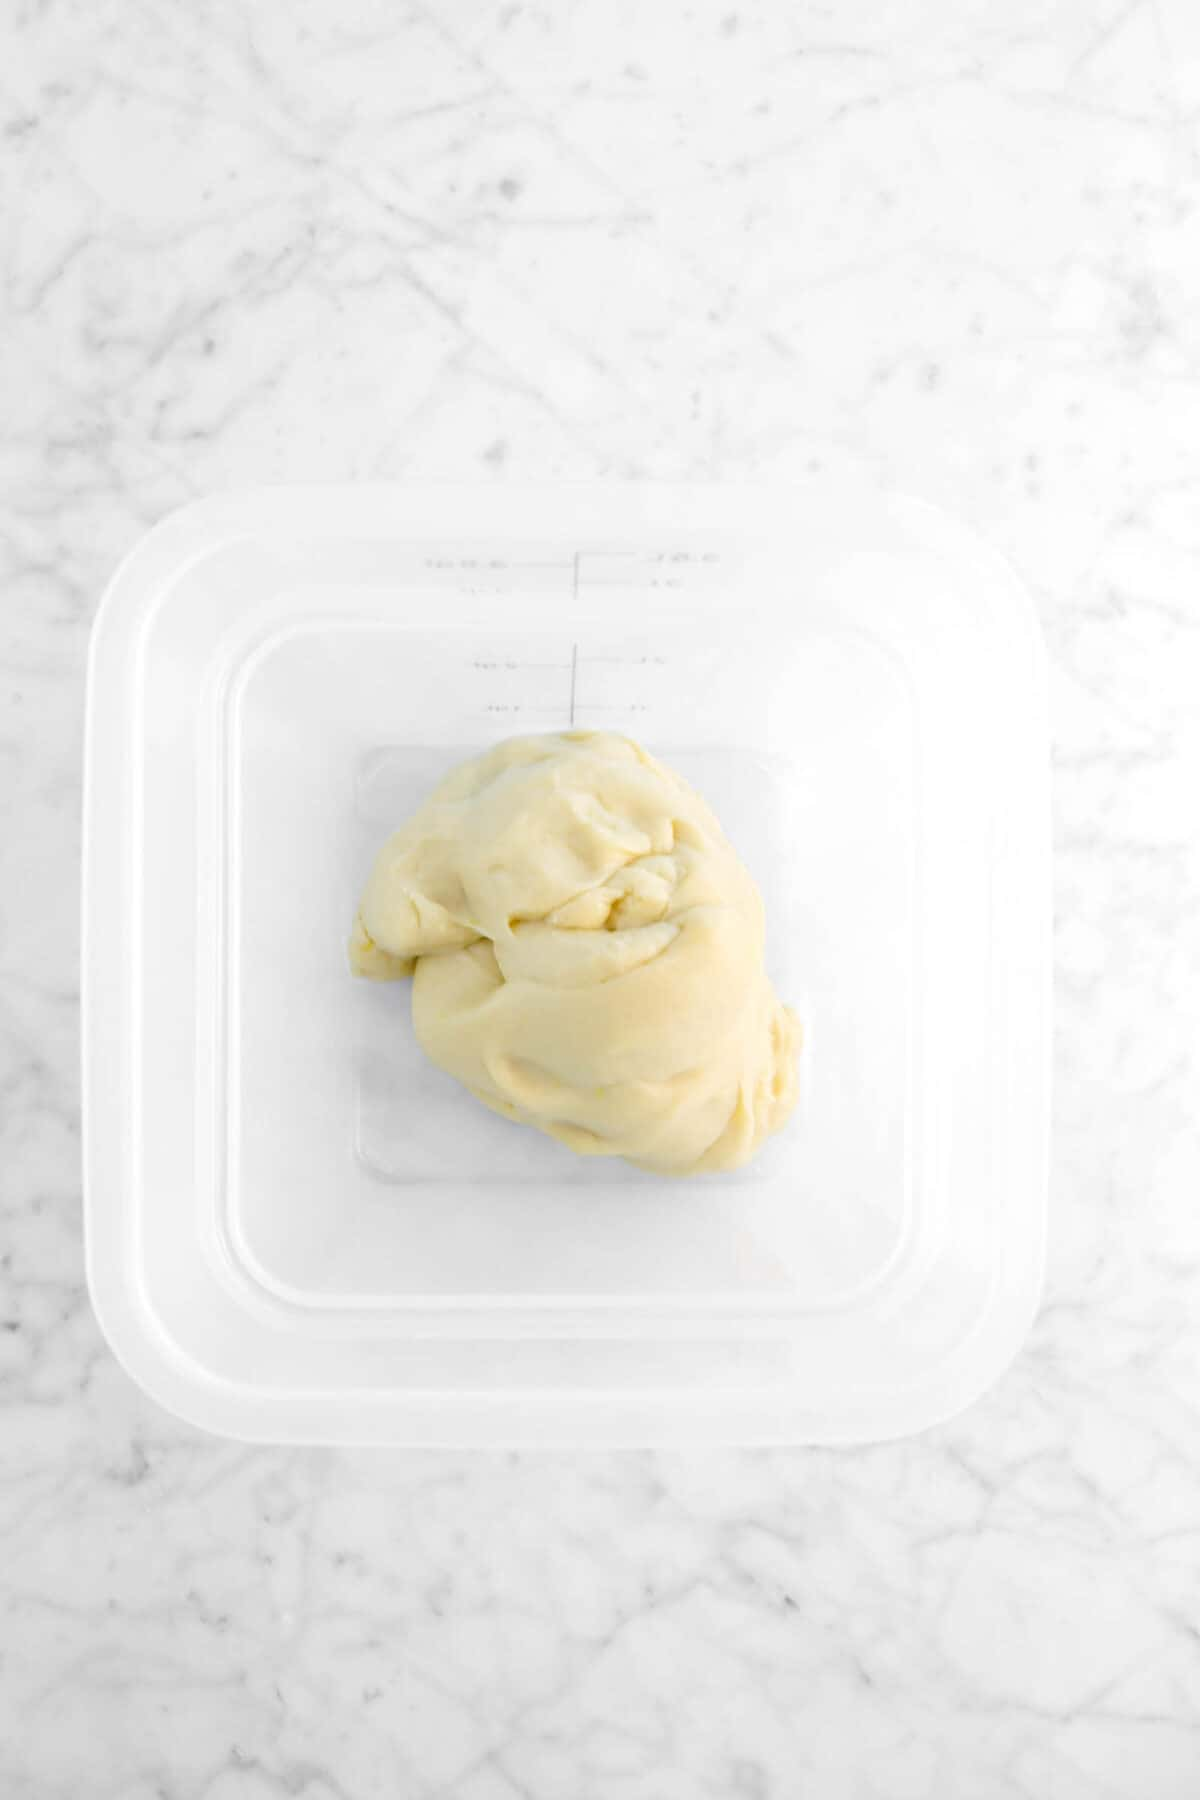 sweet dough in plastic container